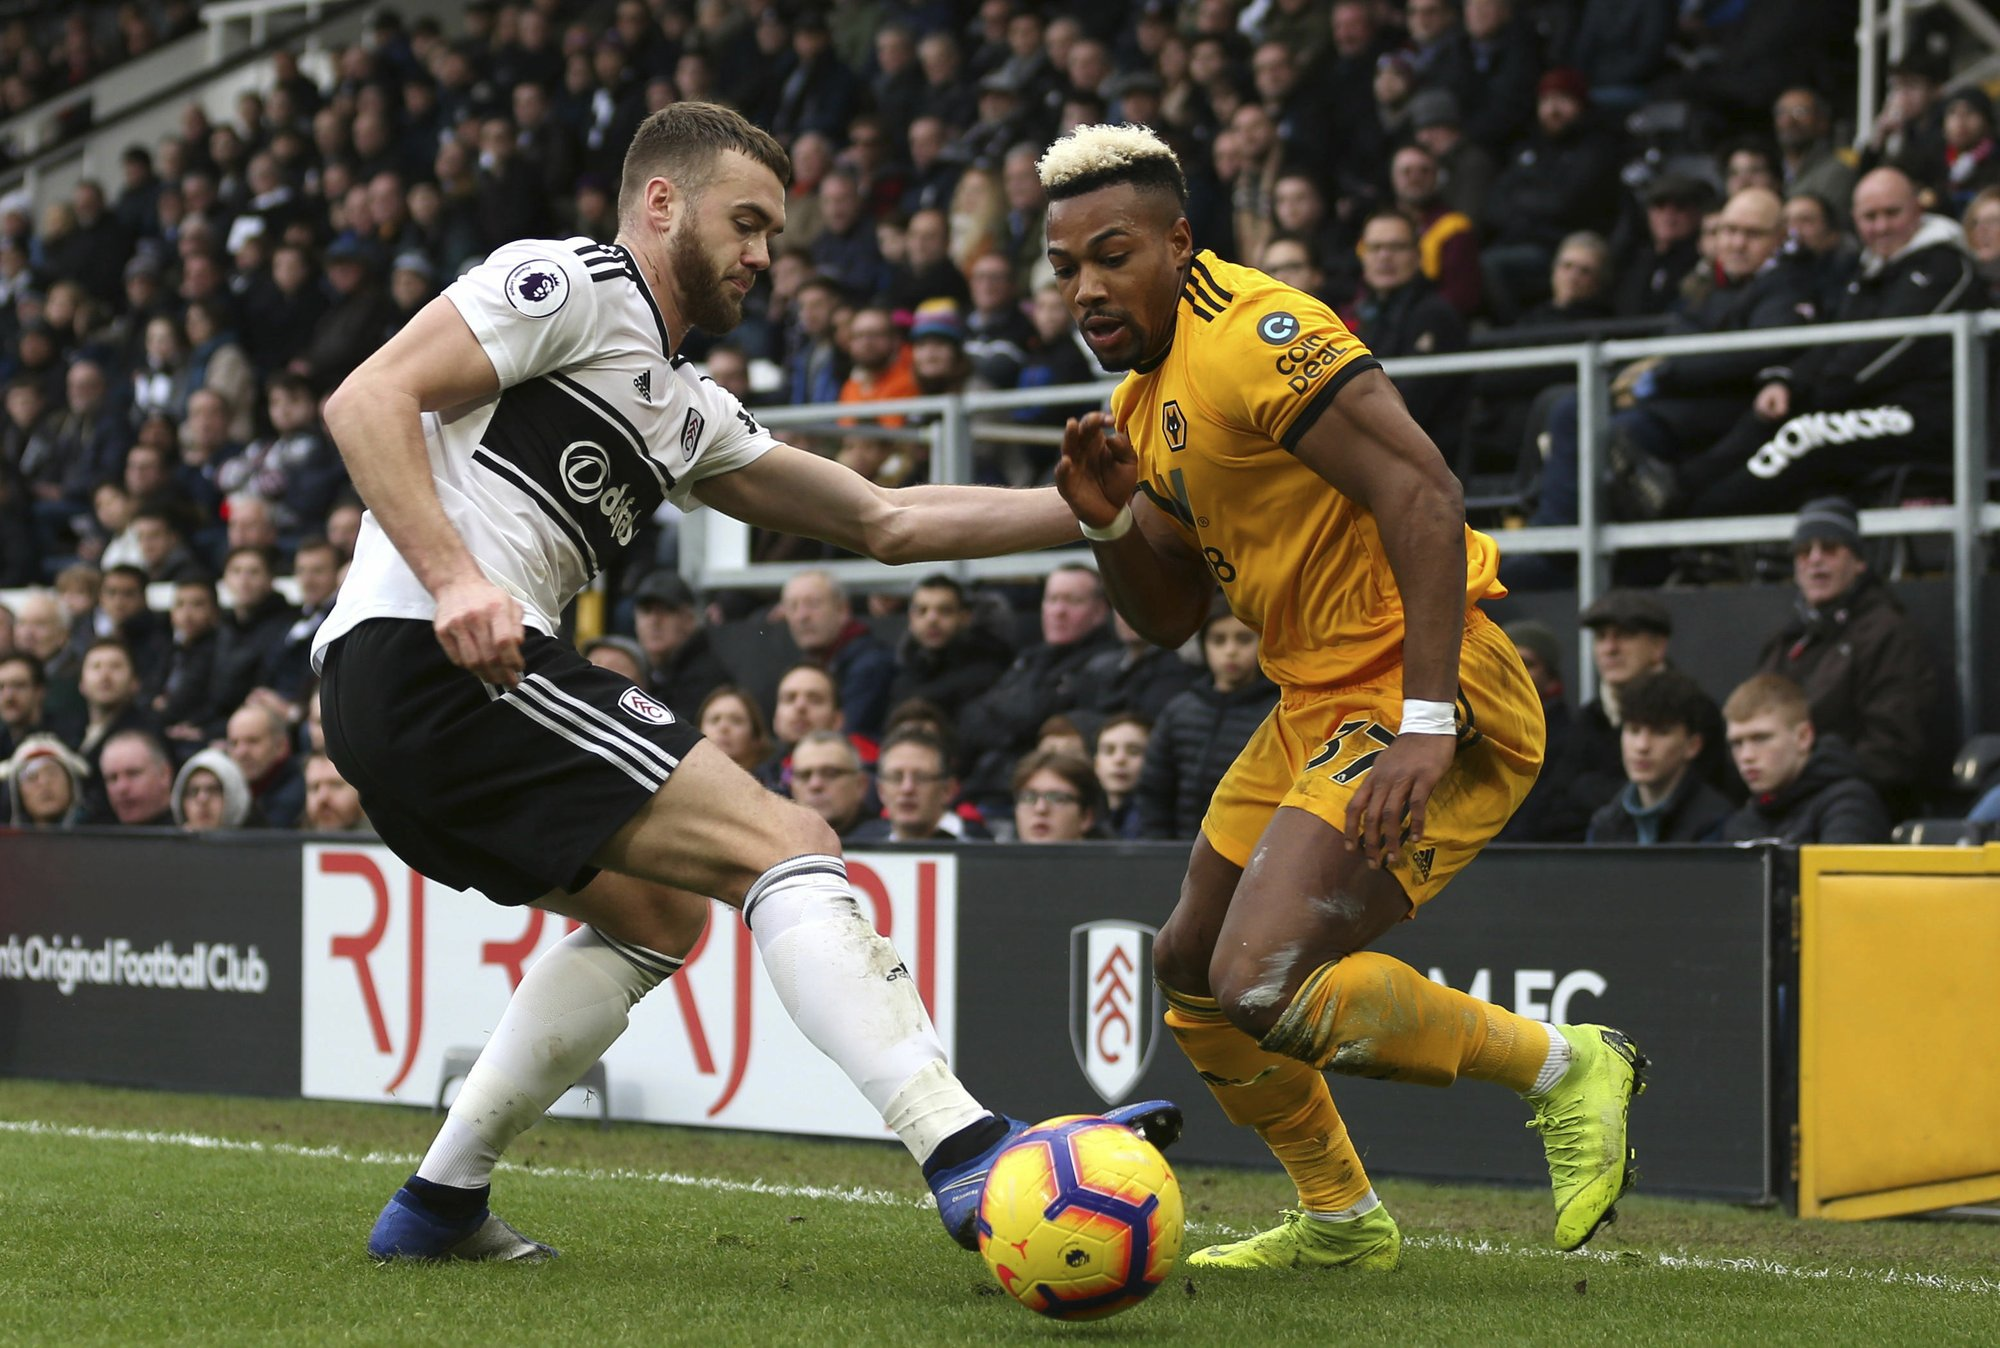 Fulham off the bottom after 1-1 draw with Wolverhampton